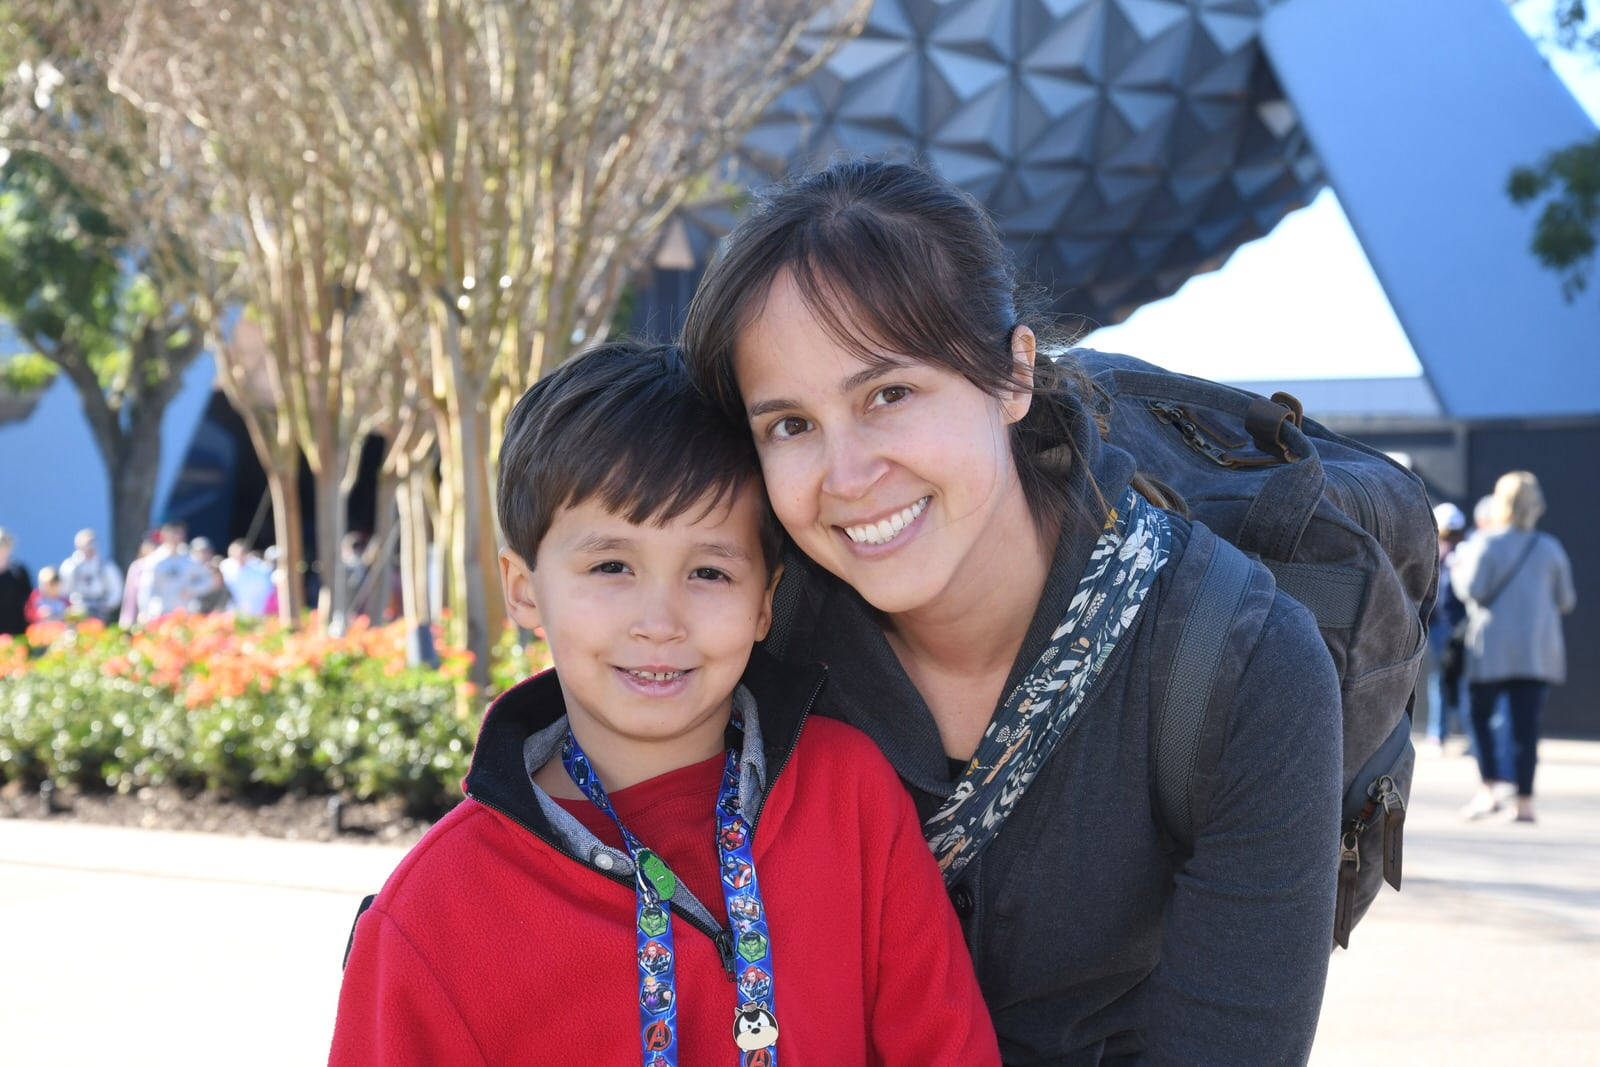 my son and I pose for Photo Pass photographer at EPCOT